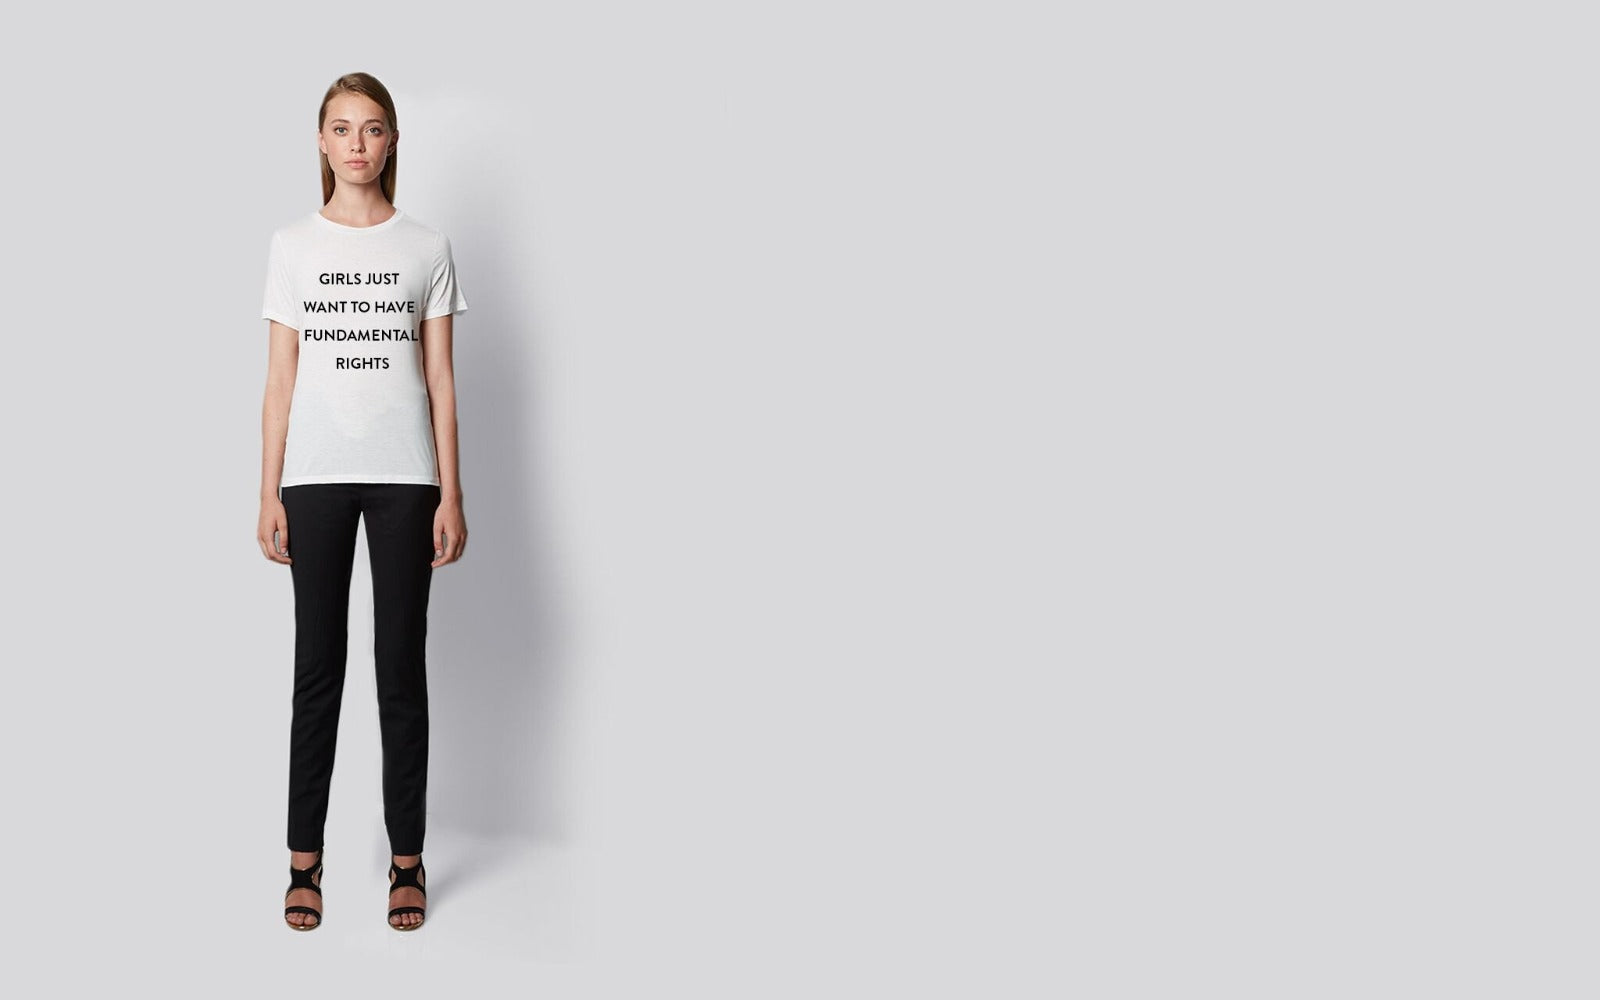 Girls Just Want to Have Fundamental Rights Tee